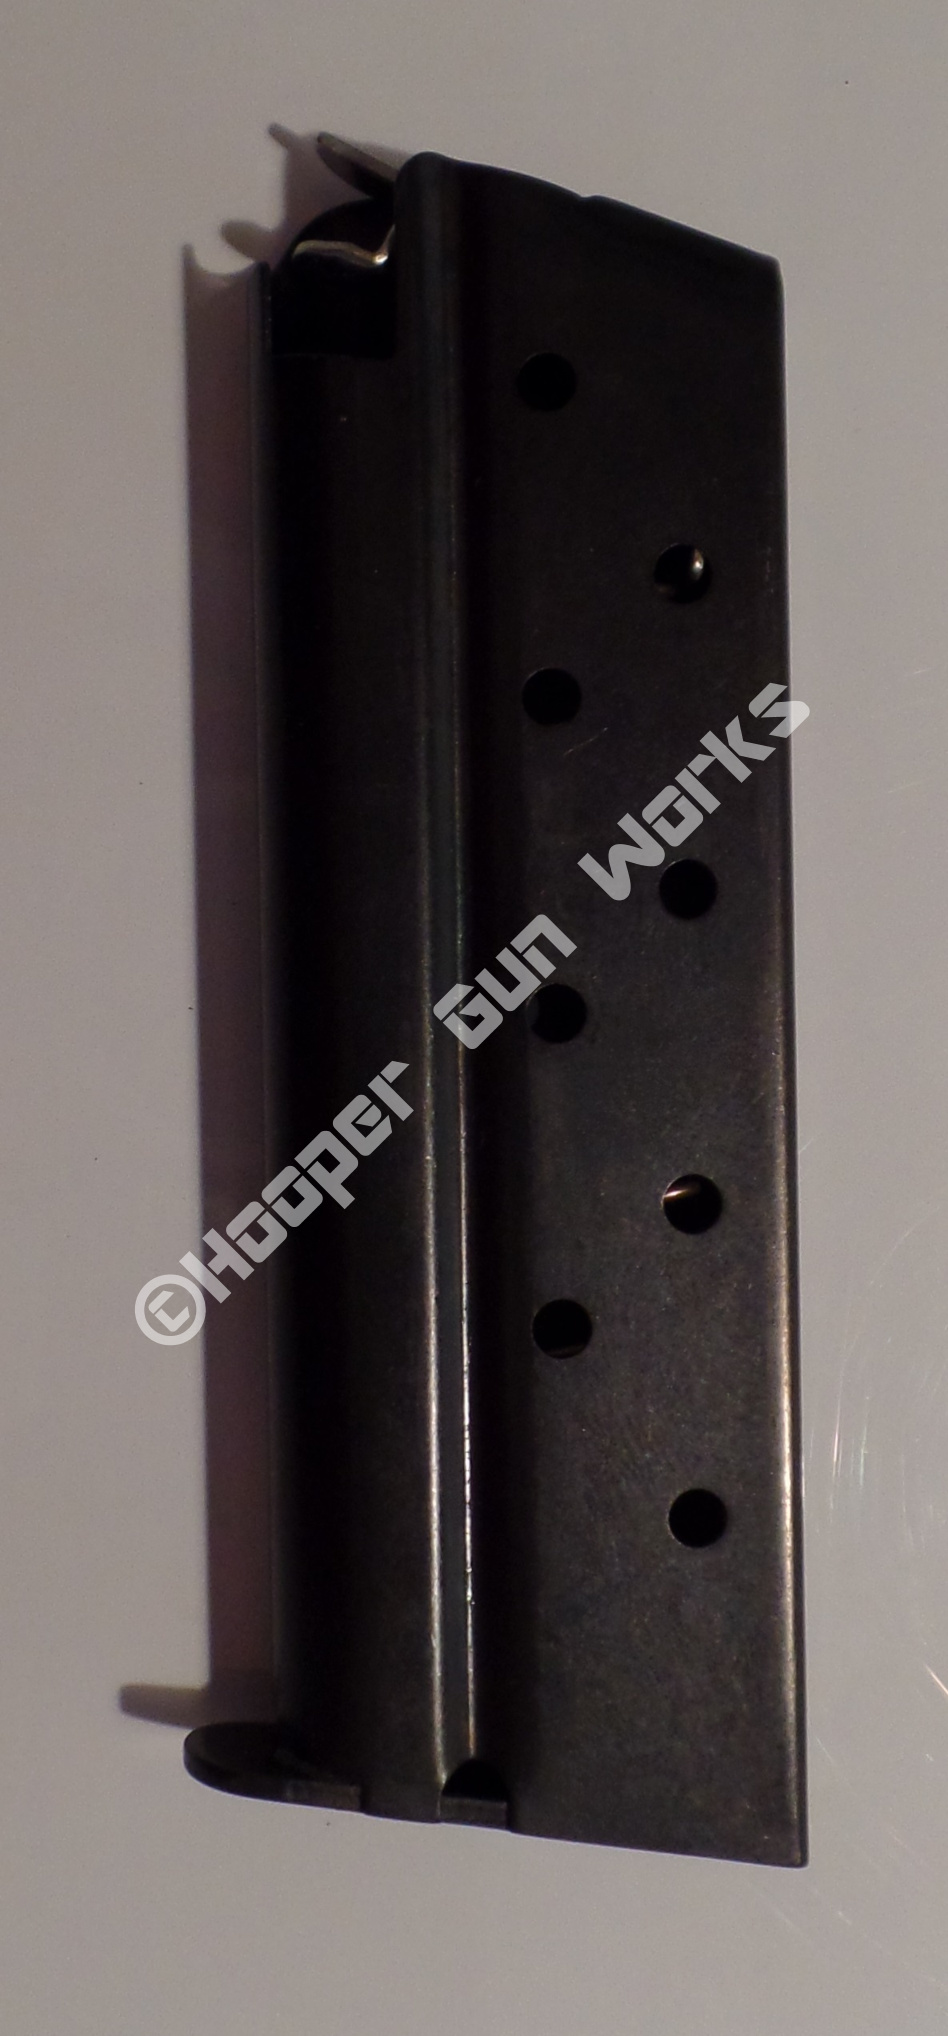 Metalform for Rock Island Armory 1911 9mm Magazine Compact 8 Round - Blued